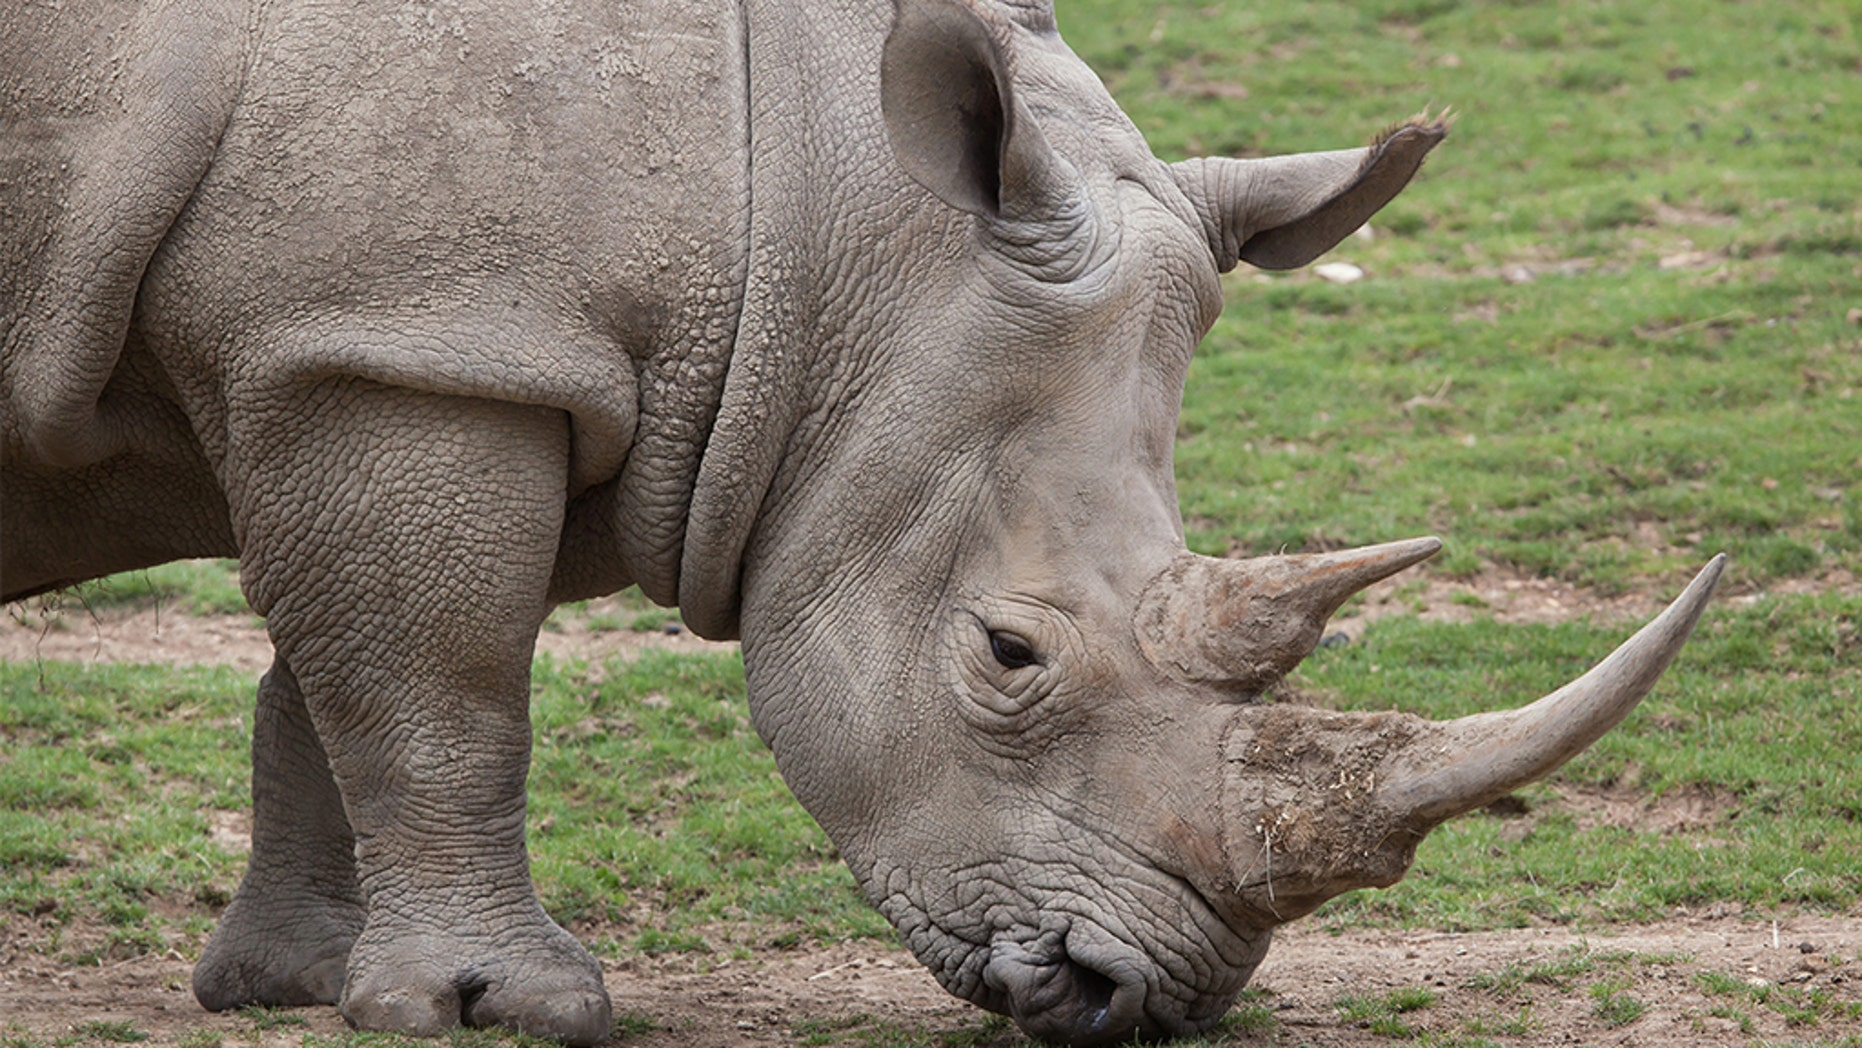 Rhino poacher killed by elephant, then eaten by lions in South Africa